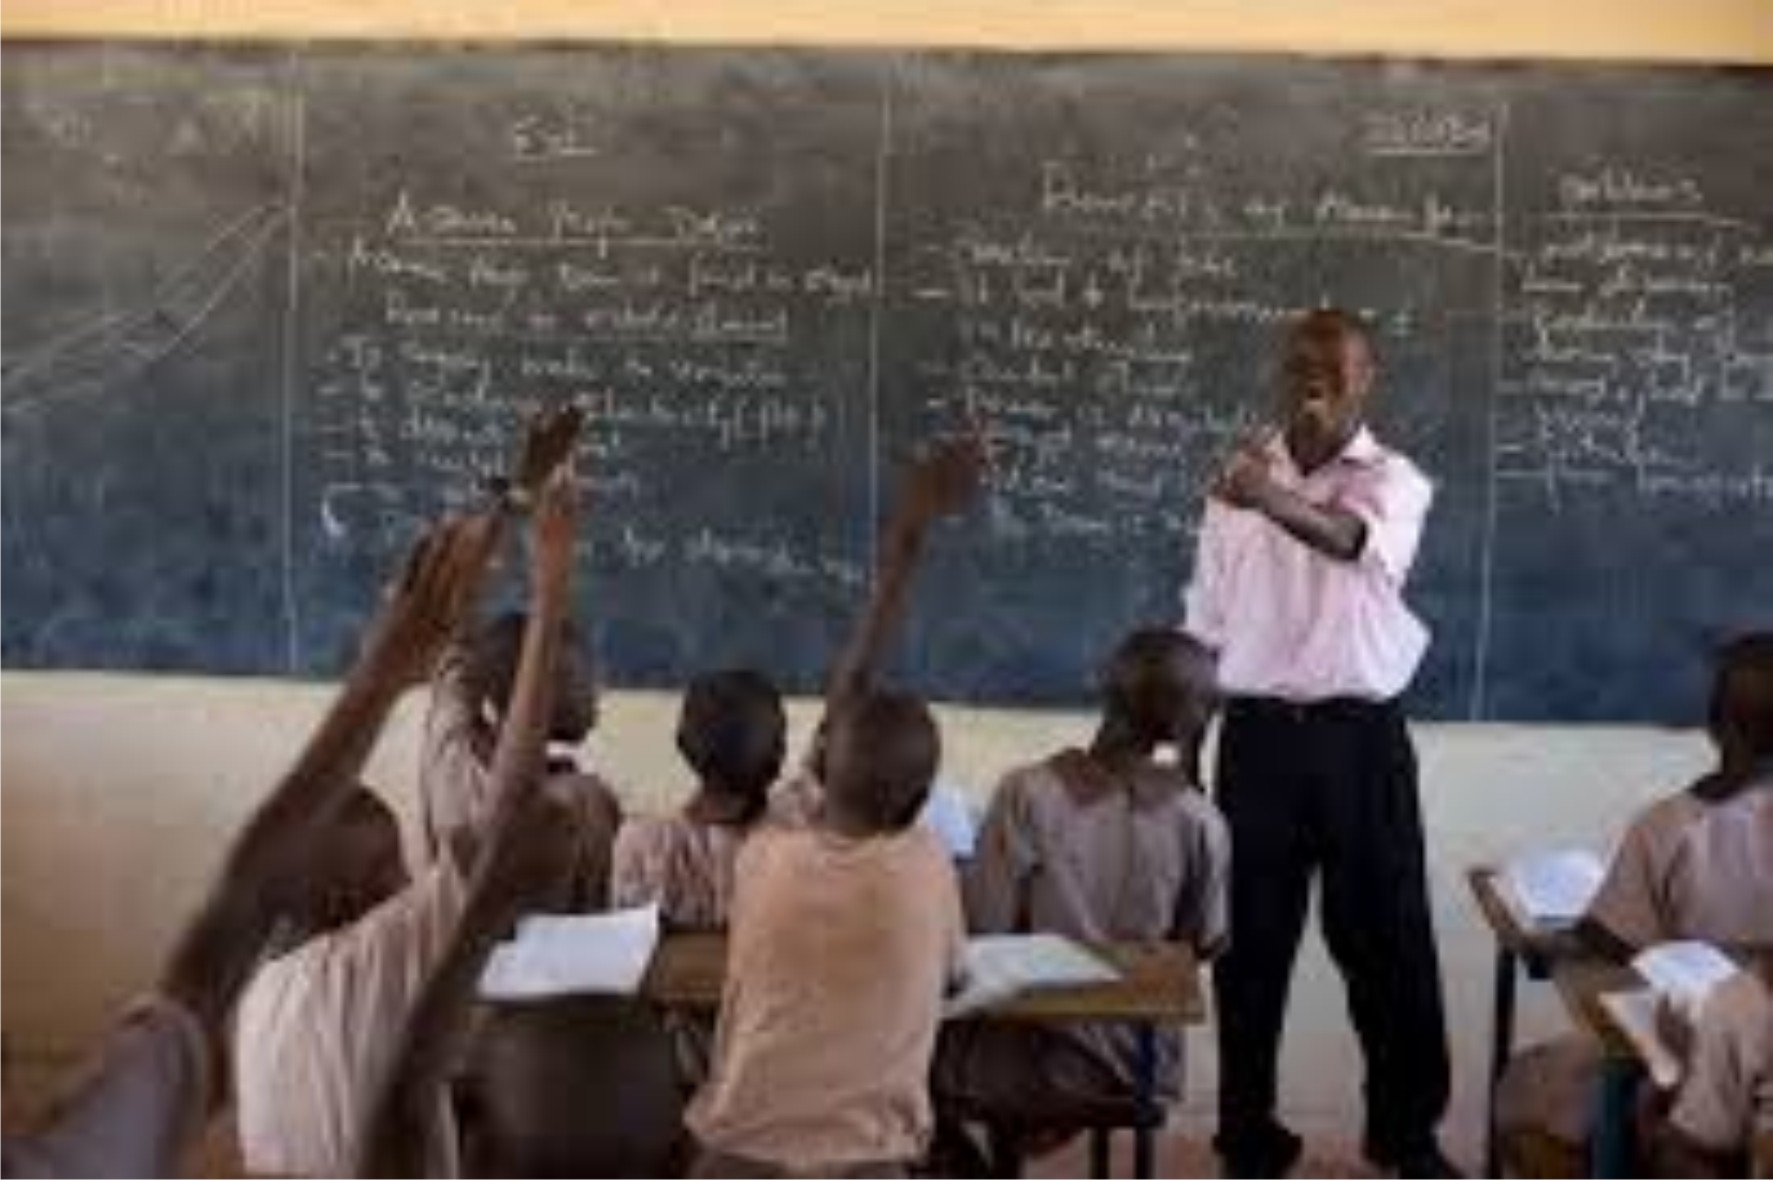 'Teachers' shortage may collapse education sector'